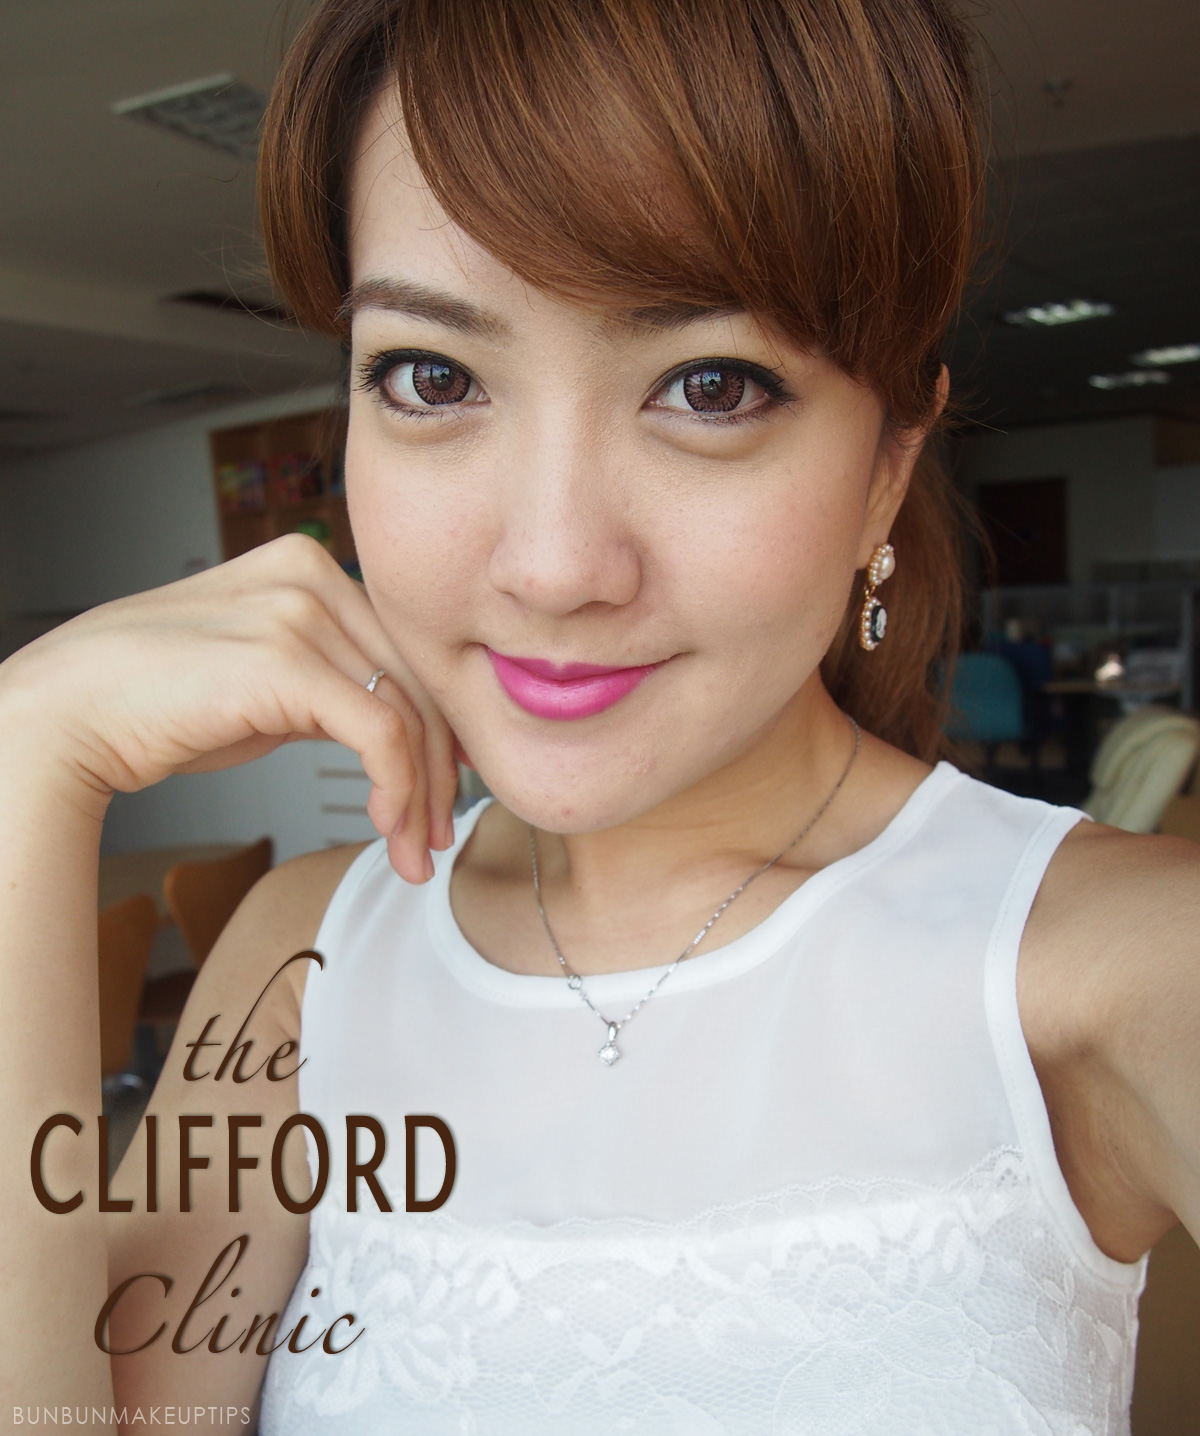 Acne-Treatment-Singapore-Clifford-Clinic_pre-treatment_3